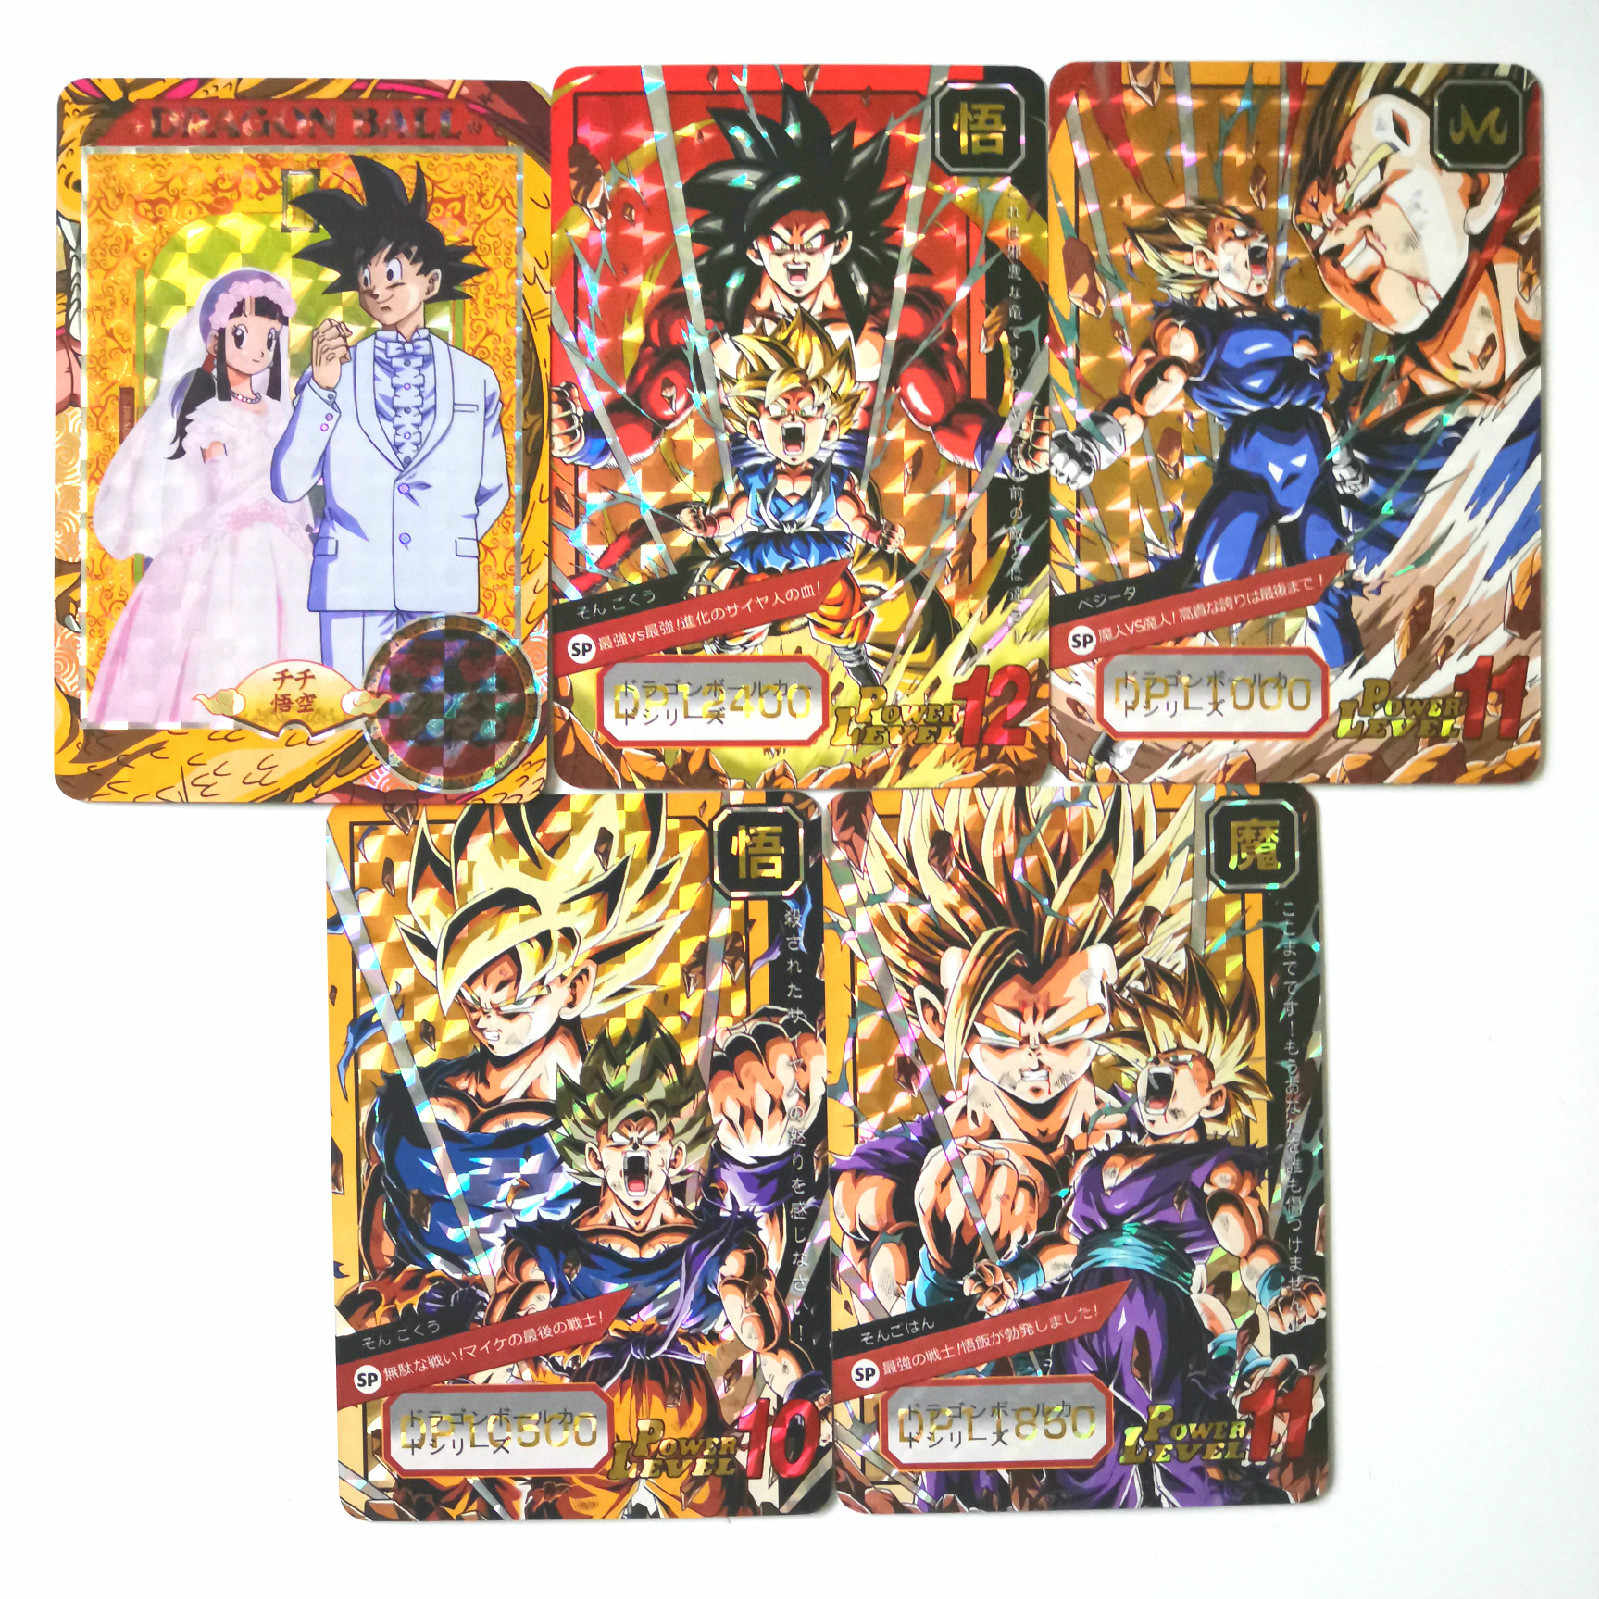 50pcs/set Super Dragon Ball Heroes Battle Card Goku Bulma Master Roshi Game Collection Anime Cards